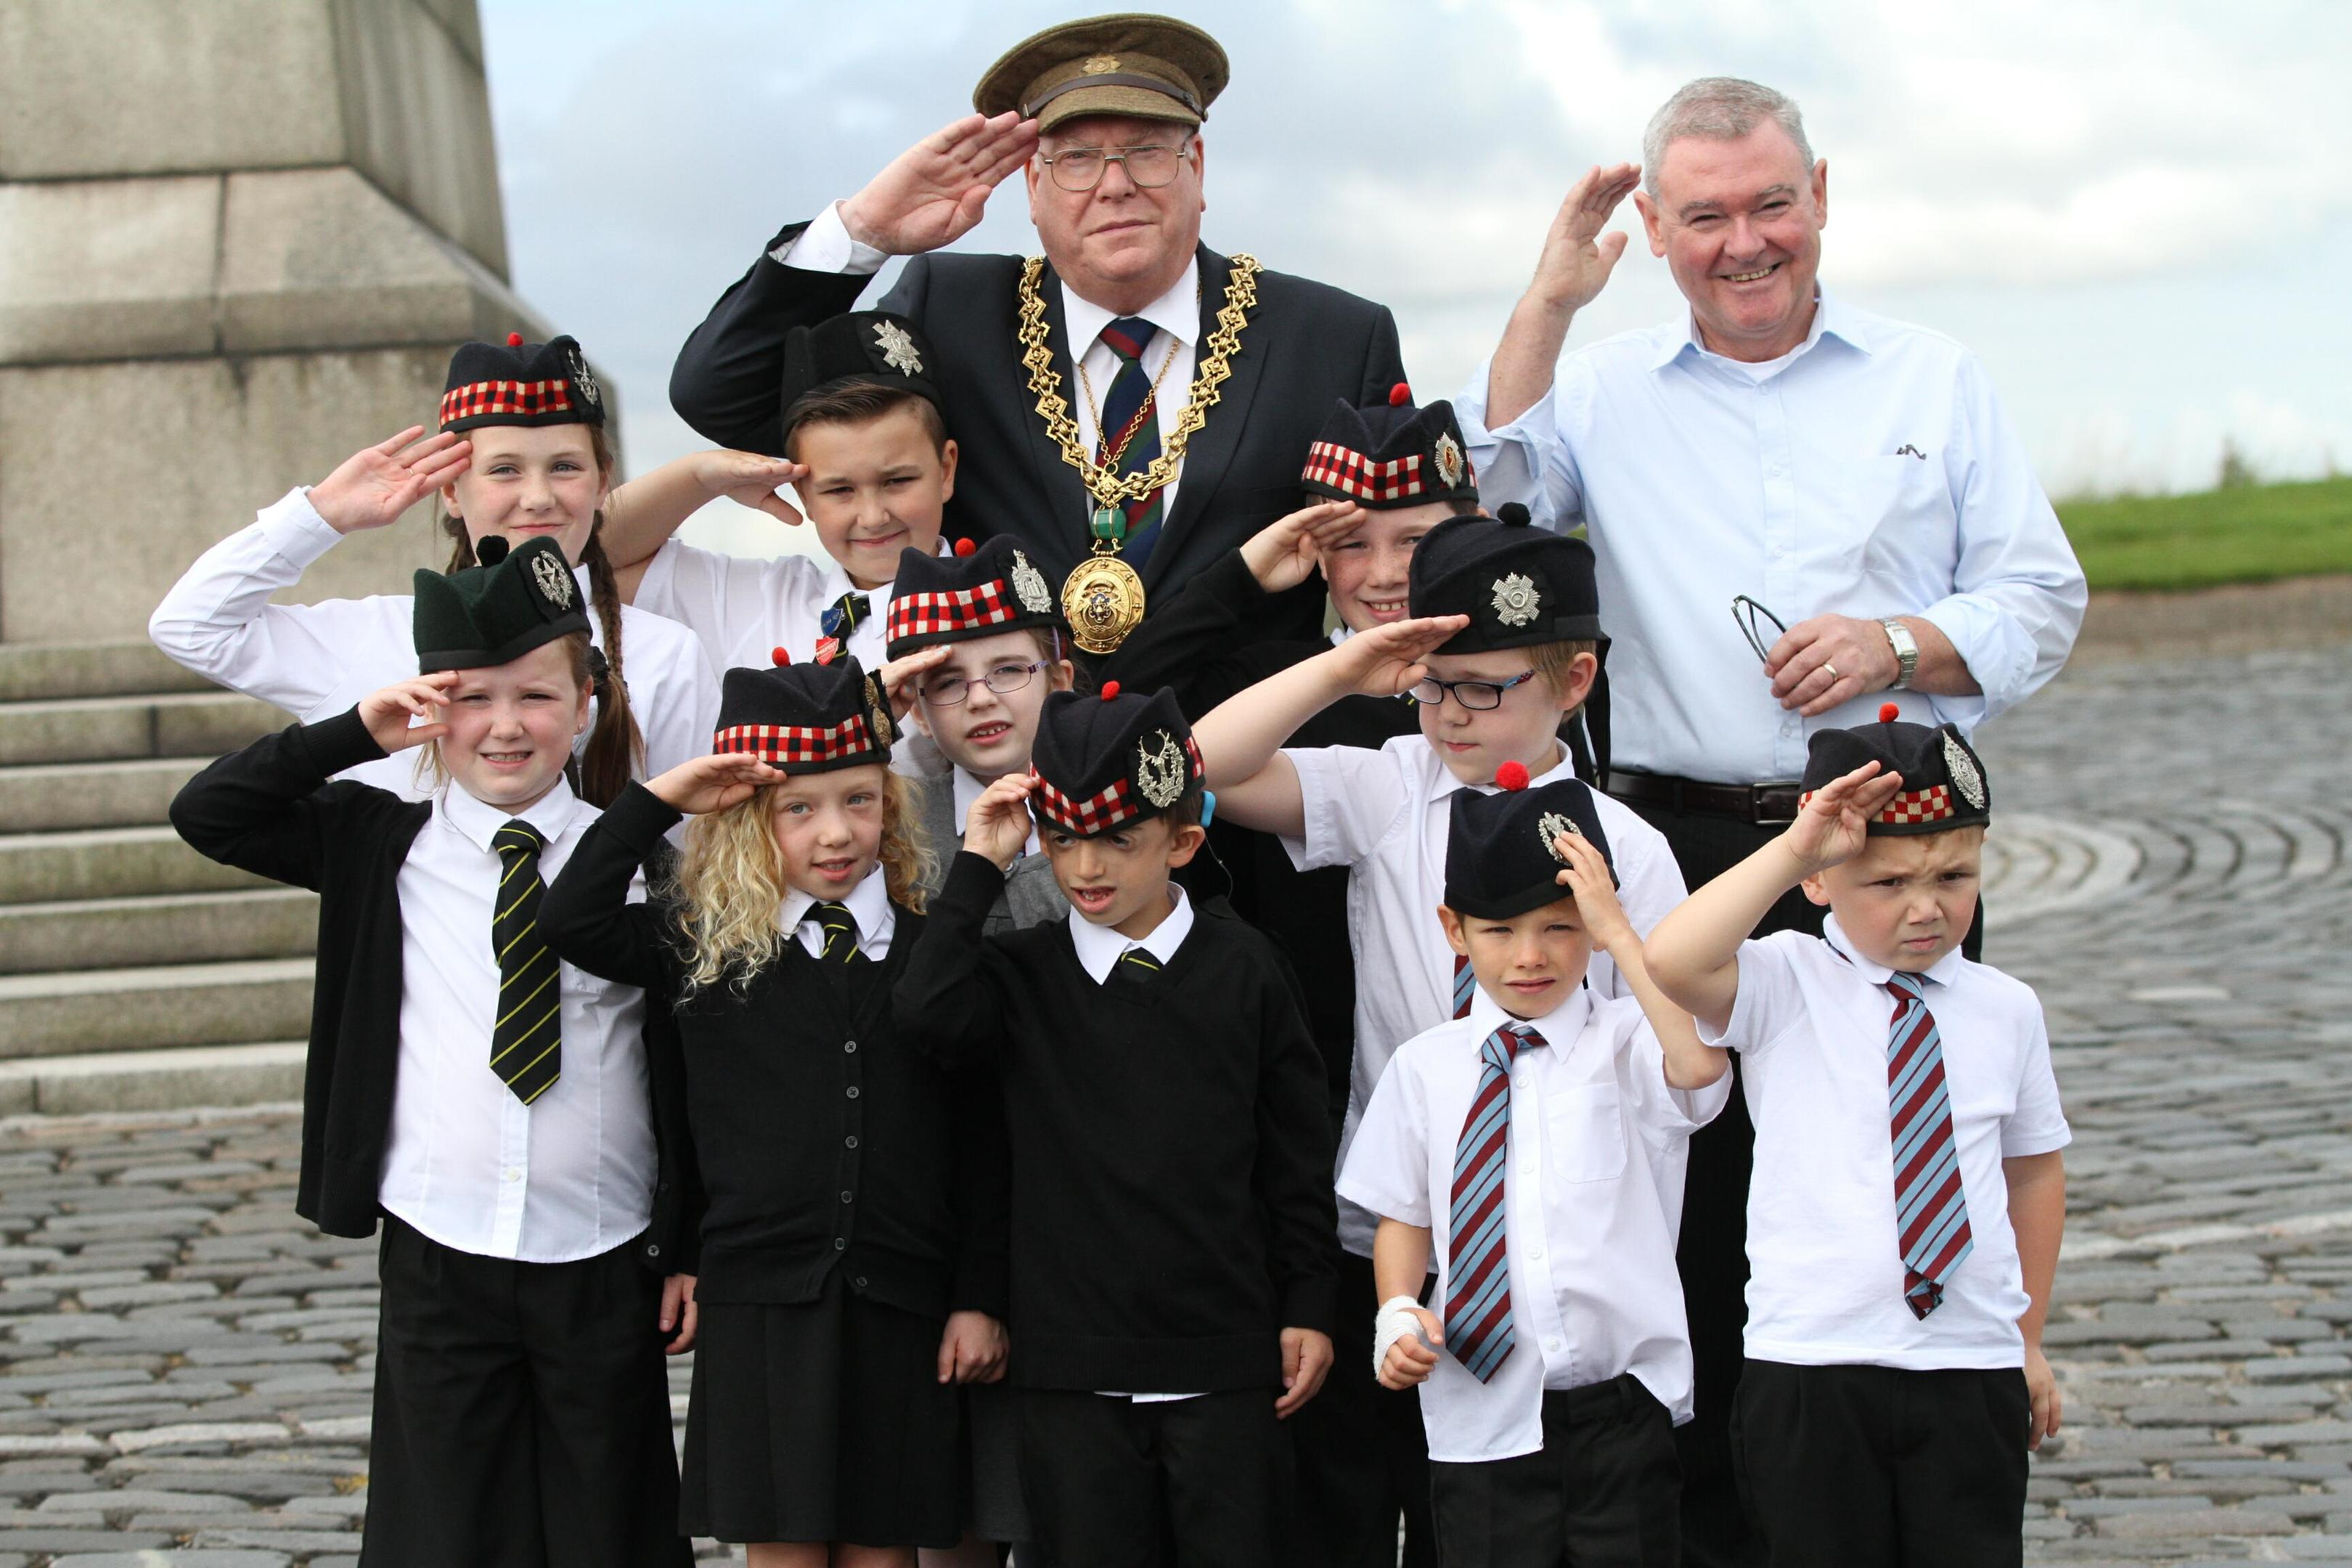 Kids from Dens Road and SS Peter and Paul primary schools with Lord Provost Bob Duncan (back centre) and Dr Billy Kenefick (back right) at the city's war memorial.